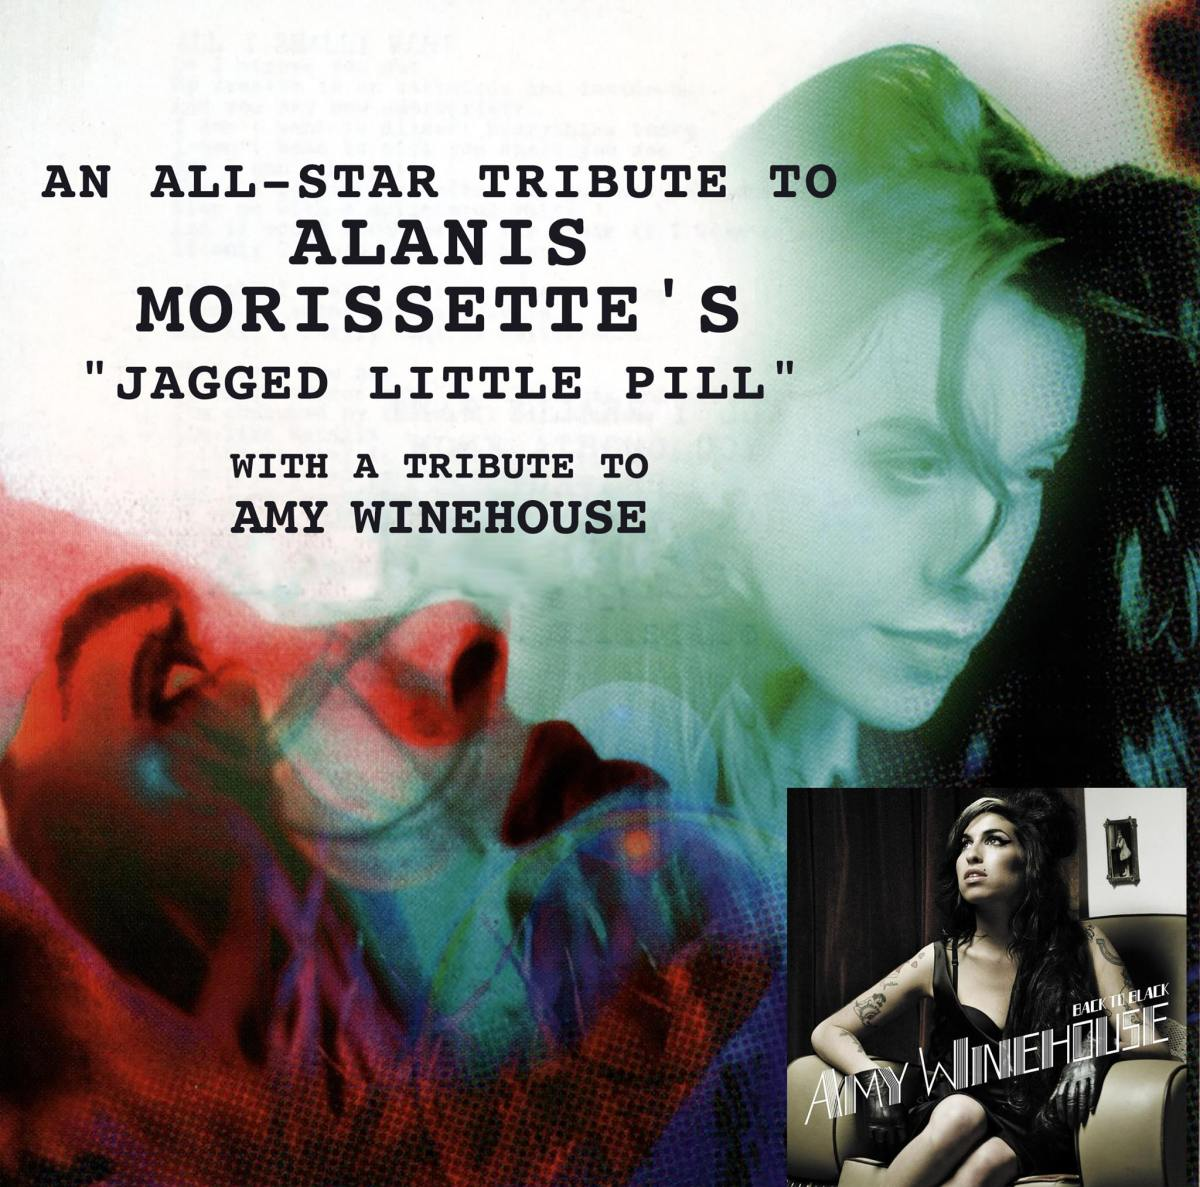 Concert Preview | Alanis Morissette Tribute Show | Feb. 23 at Cervantes Masterpiece Ballroom